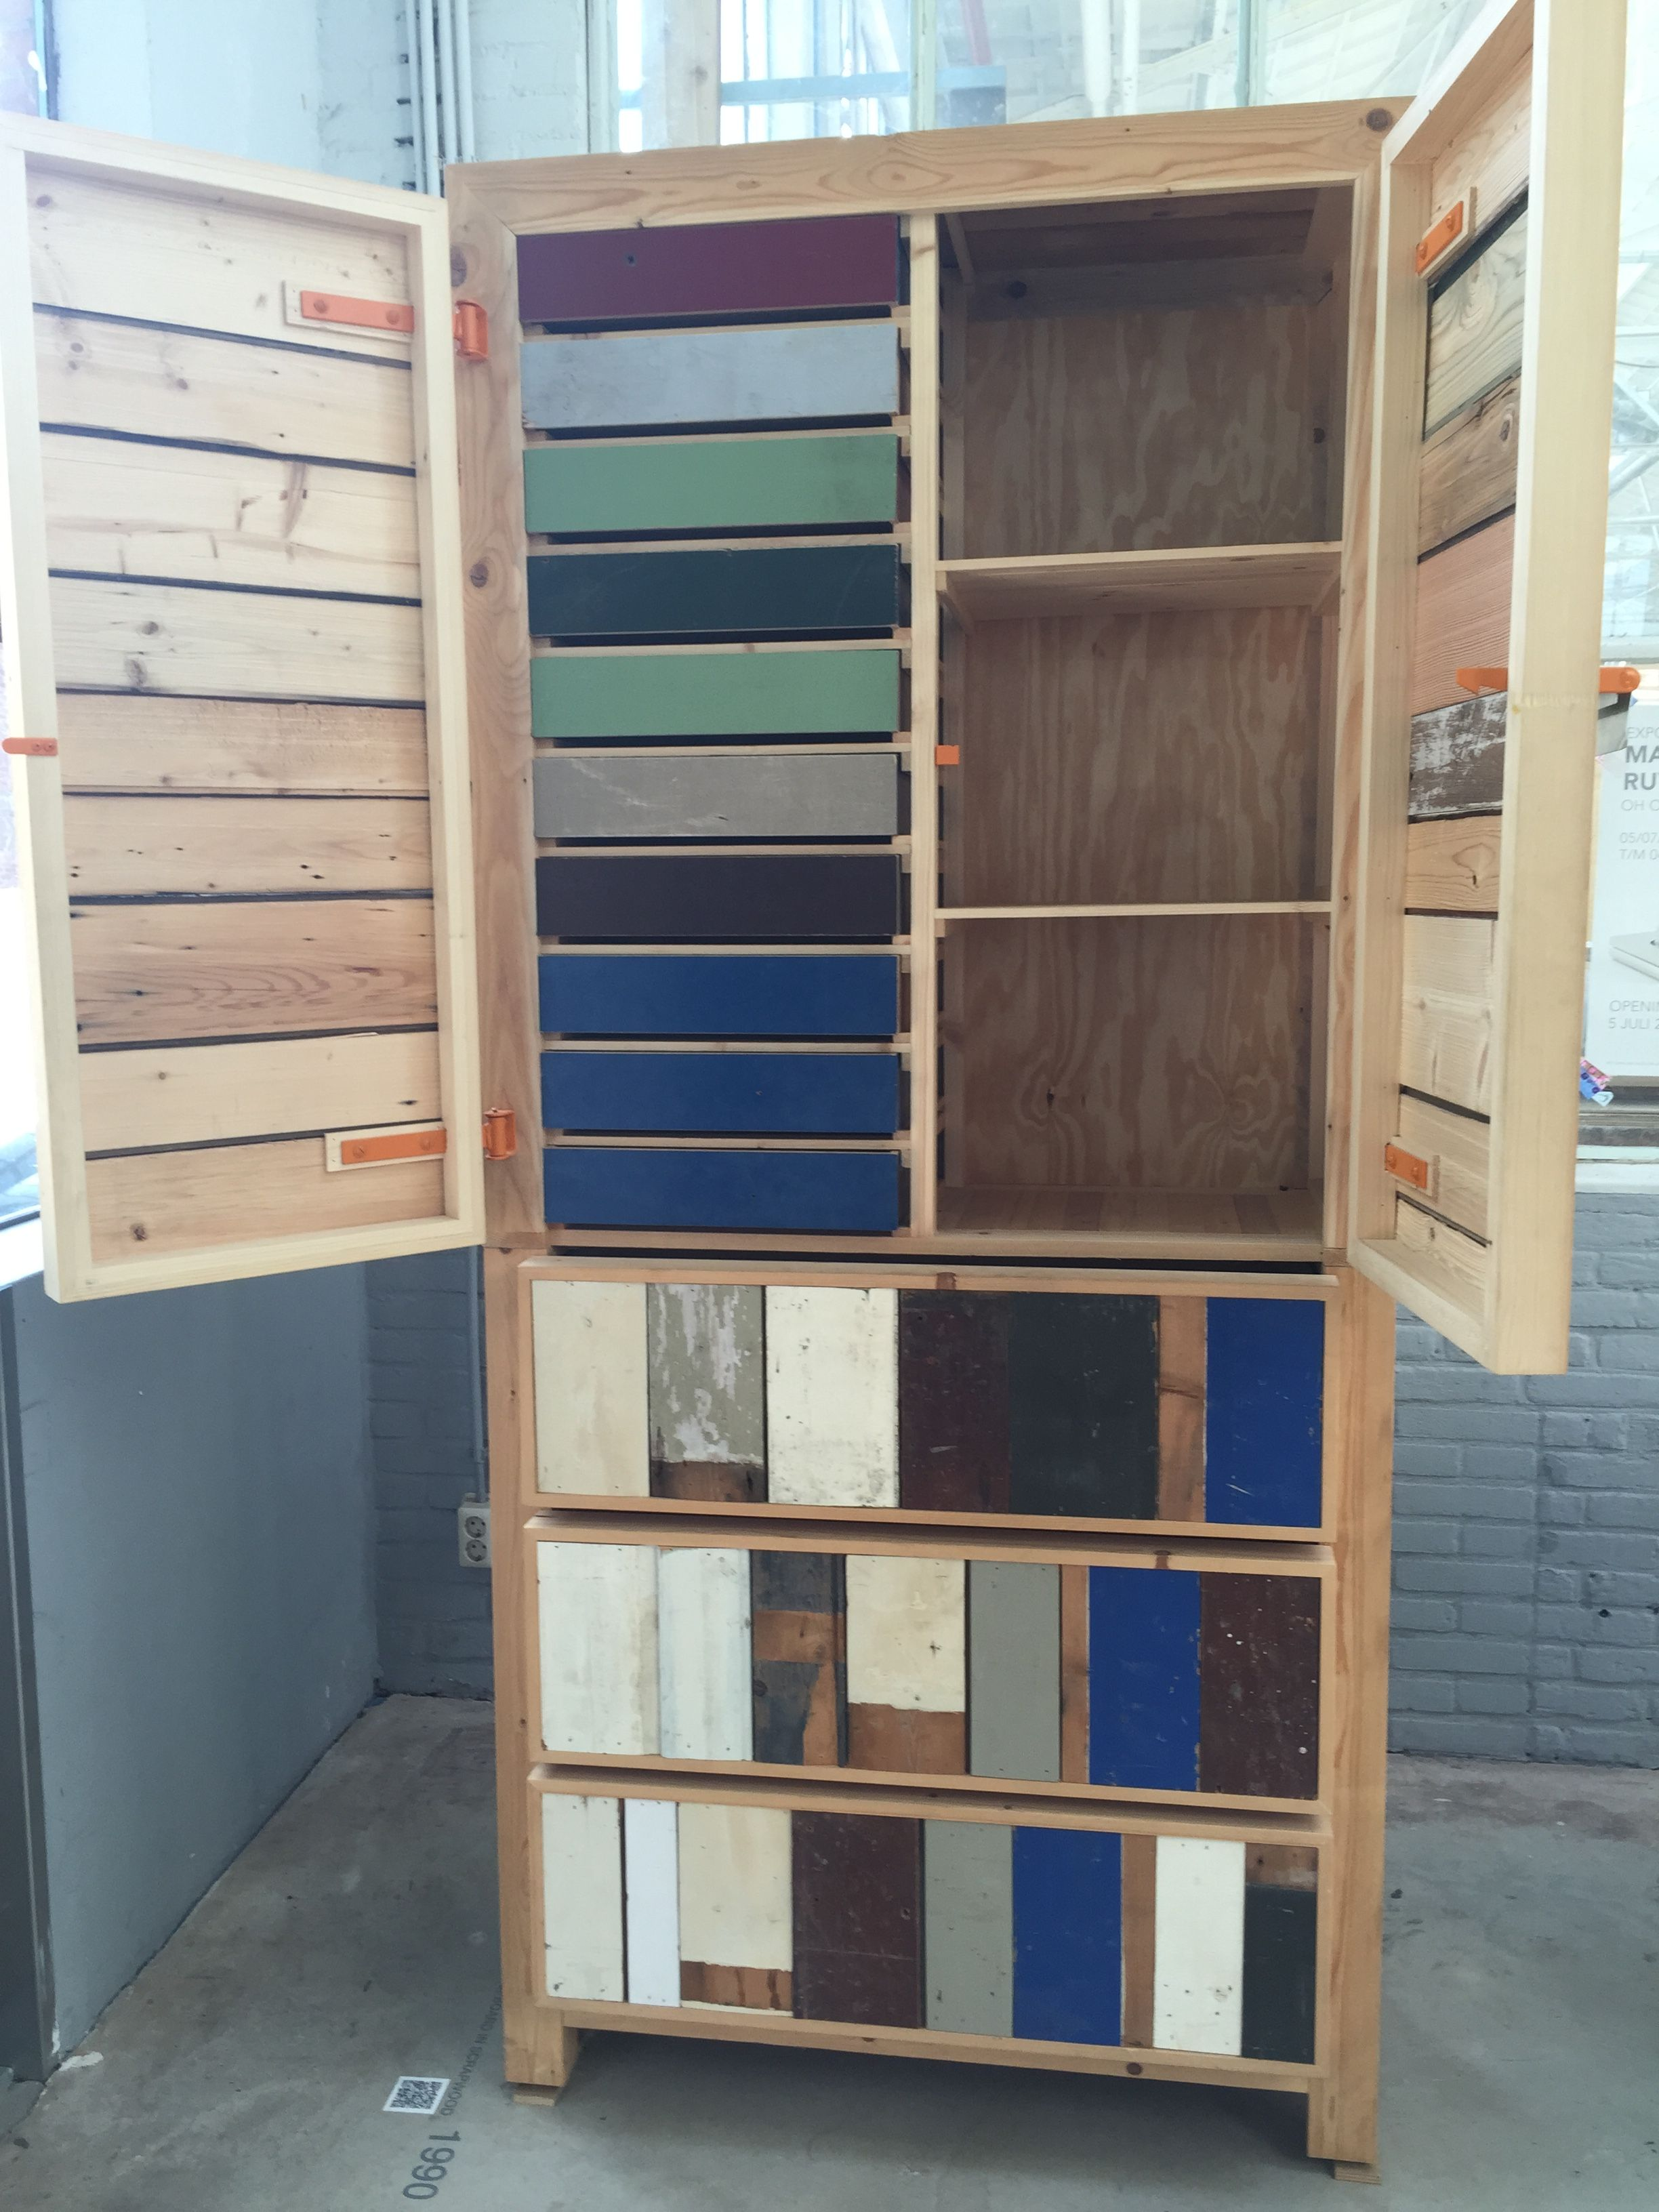 Piet Hein Eek S Wood Cabinet A Made With Well